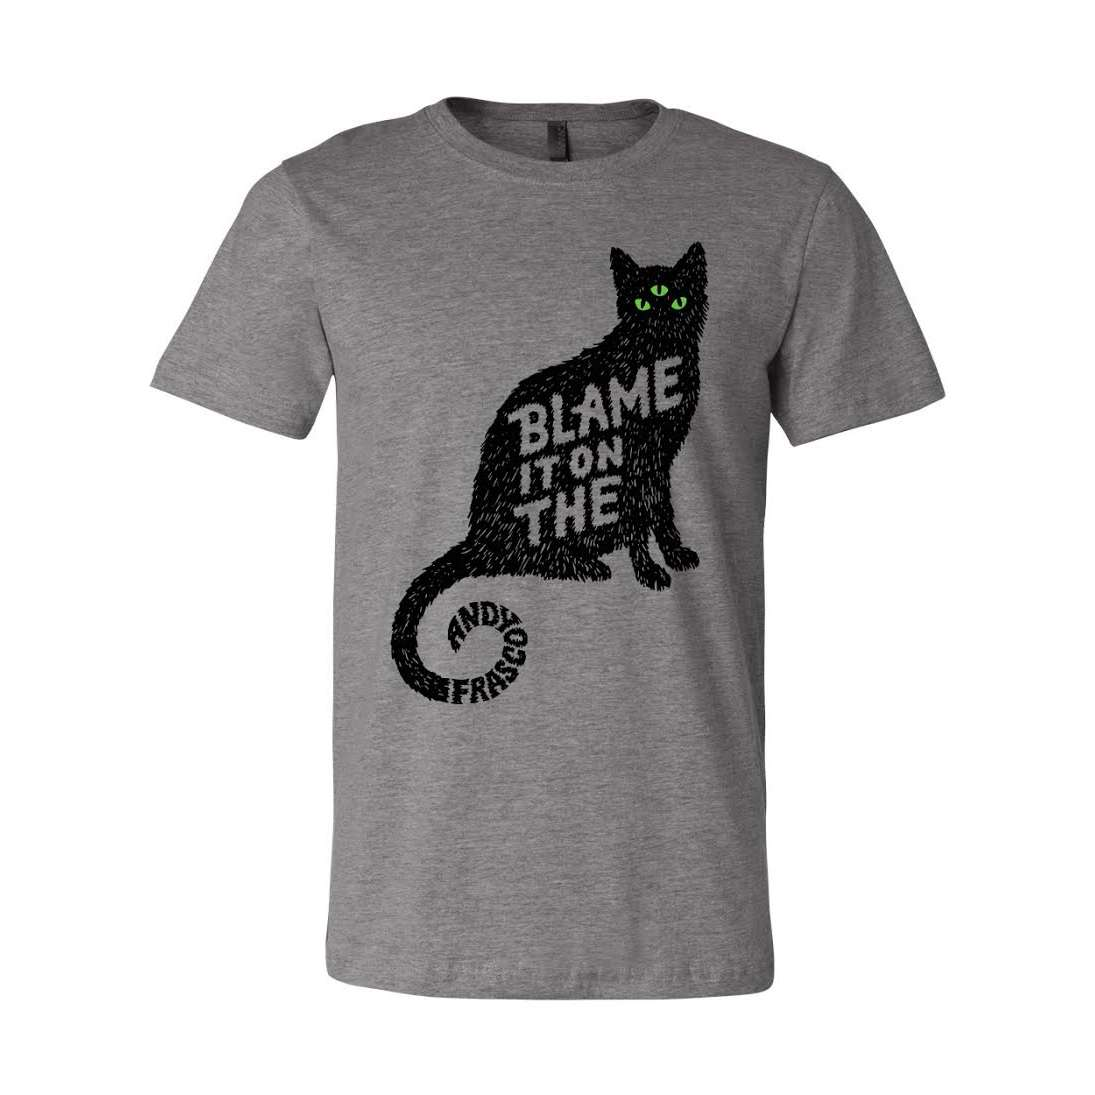 "Andy Frasco ""blame it on the pussy"" t-shirt design in grey"